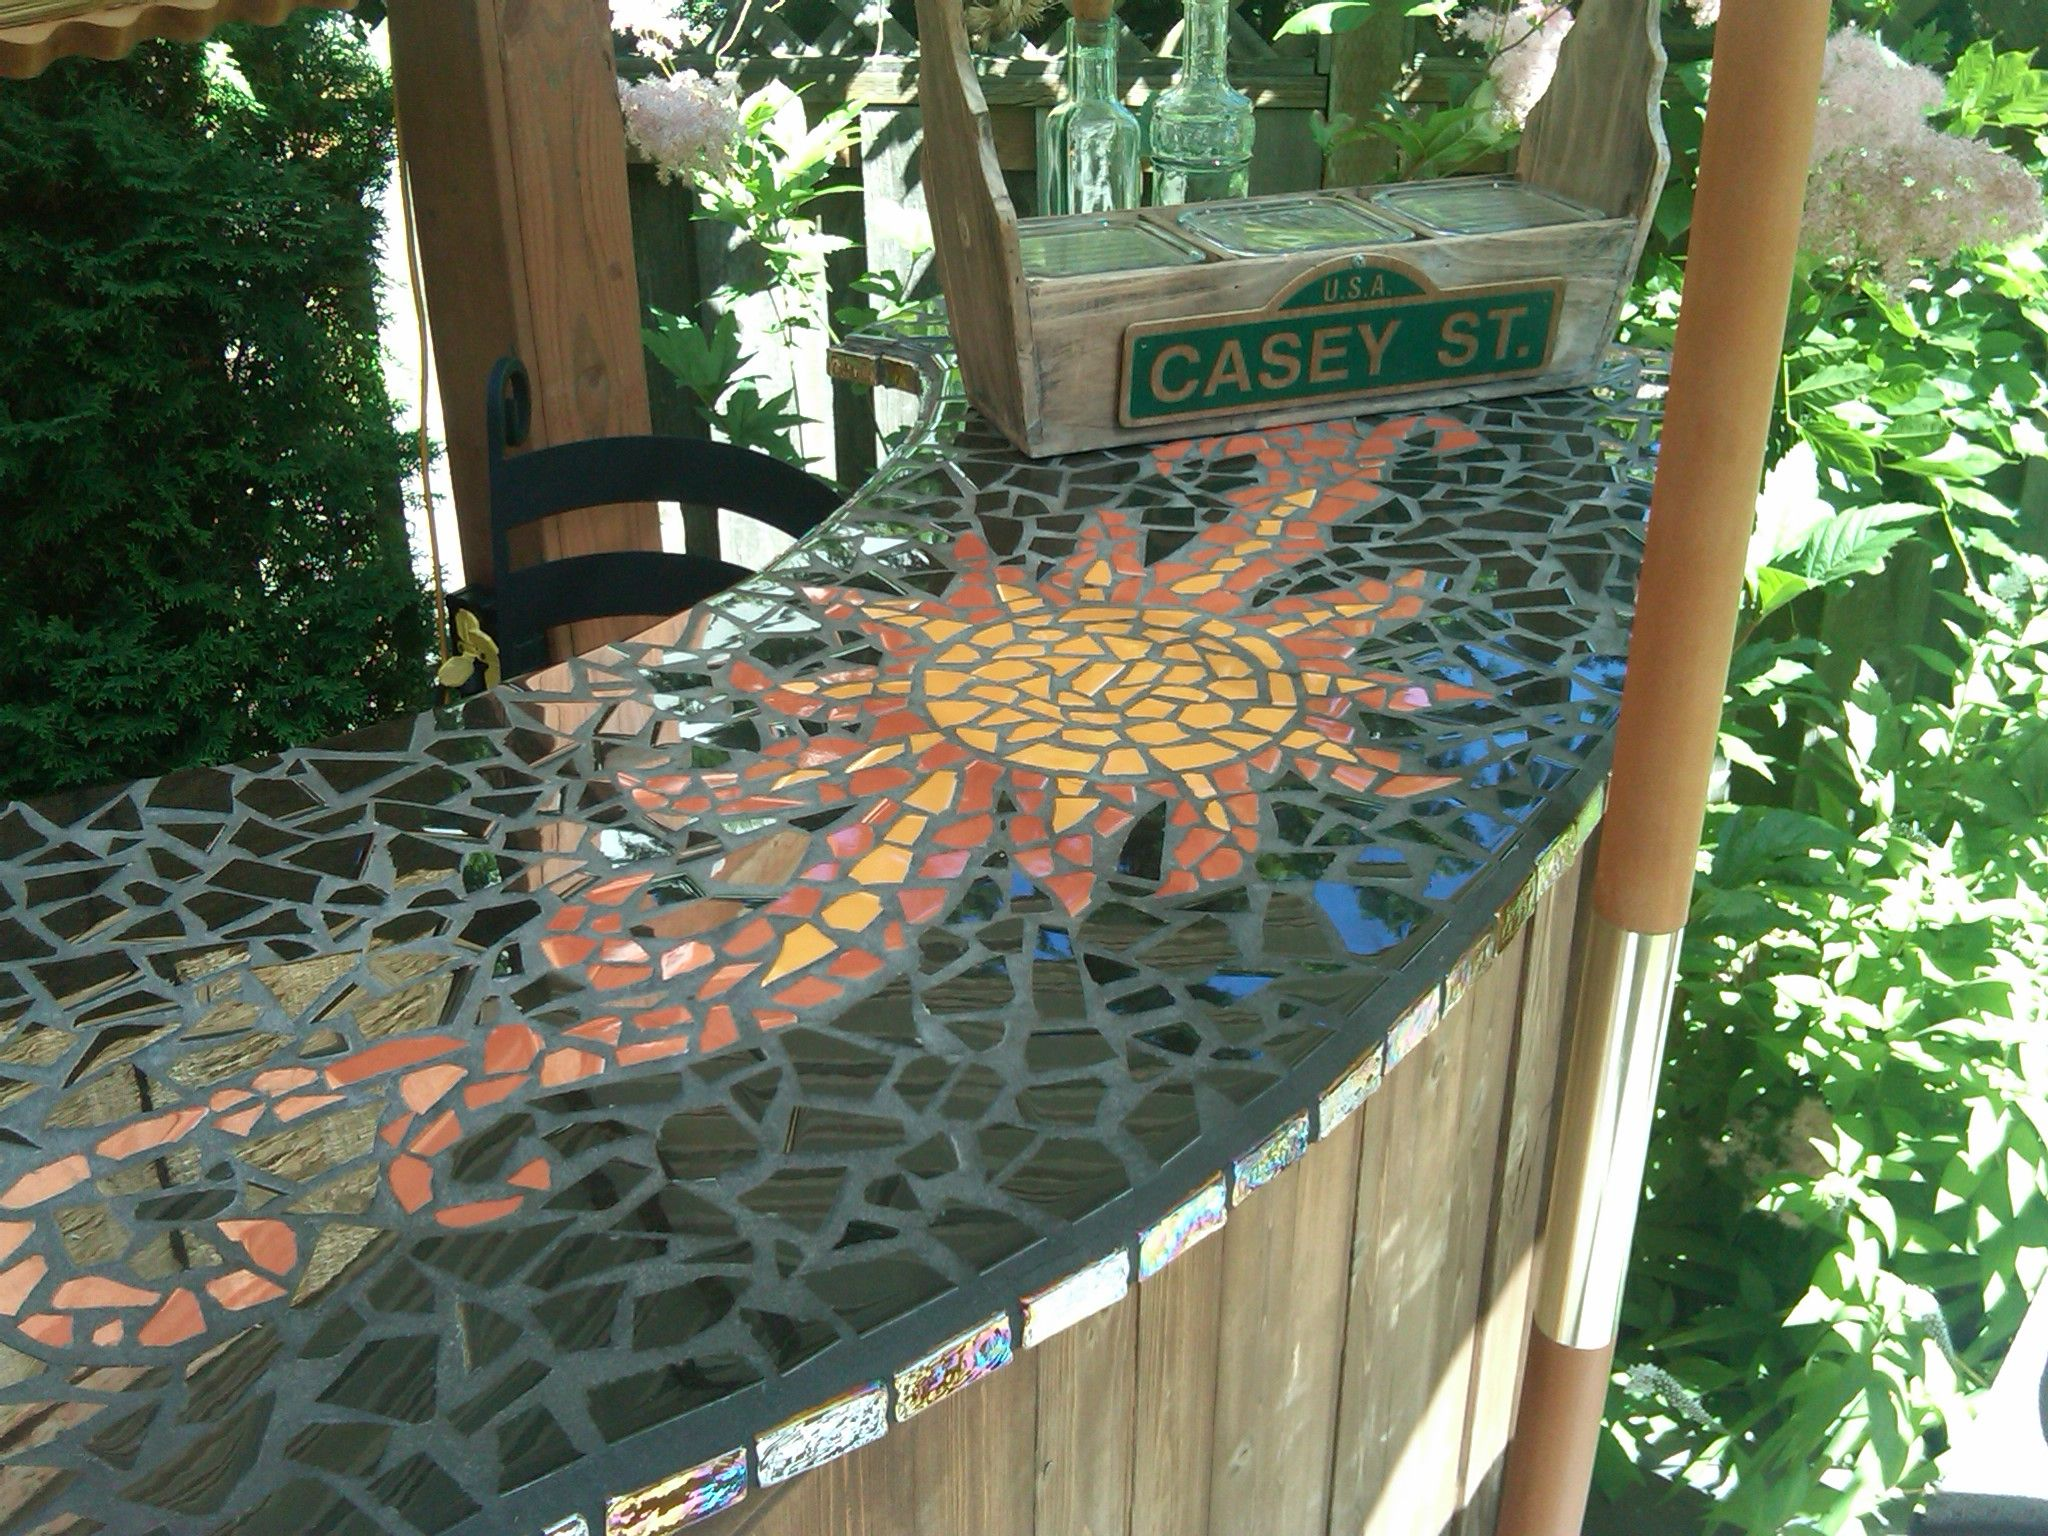 Genial Mosaic Tile Bar Top.